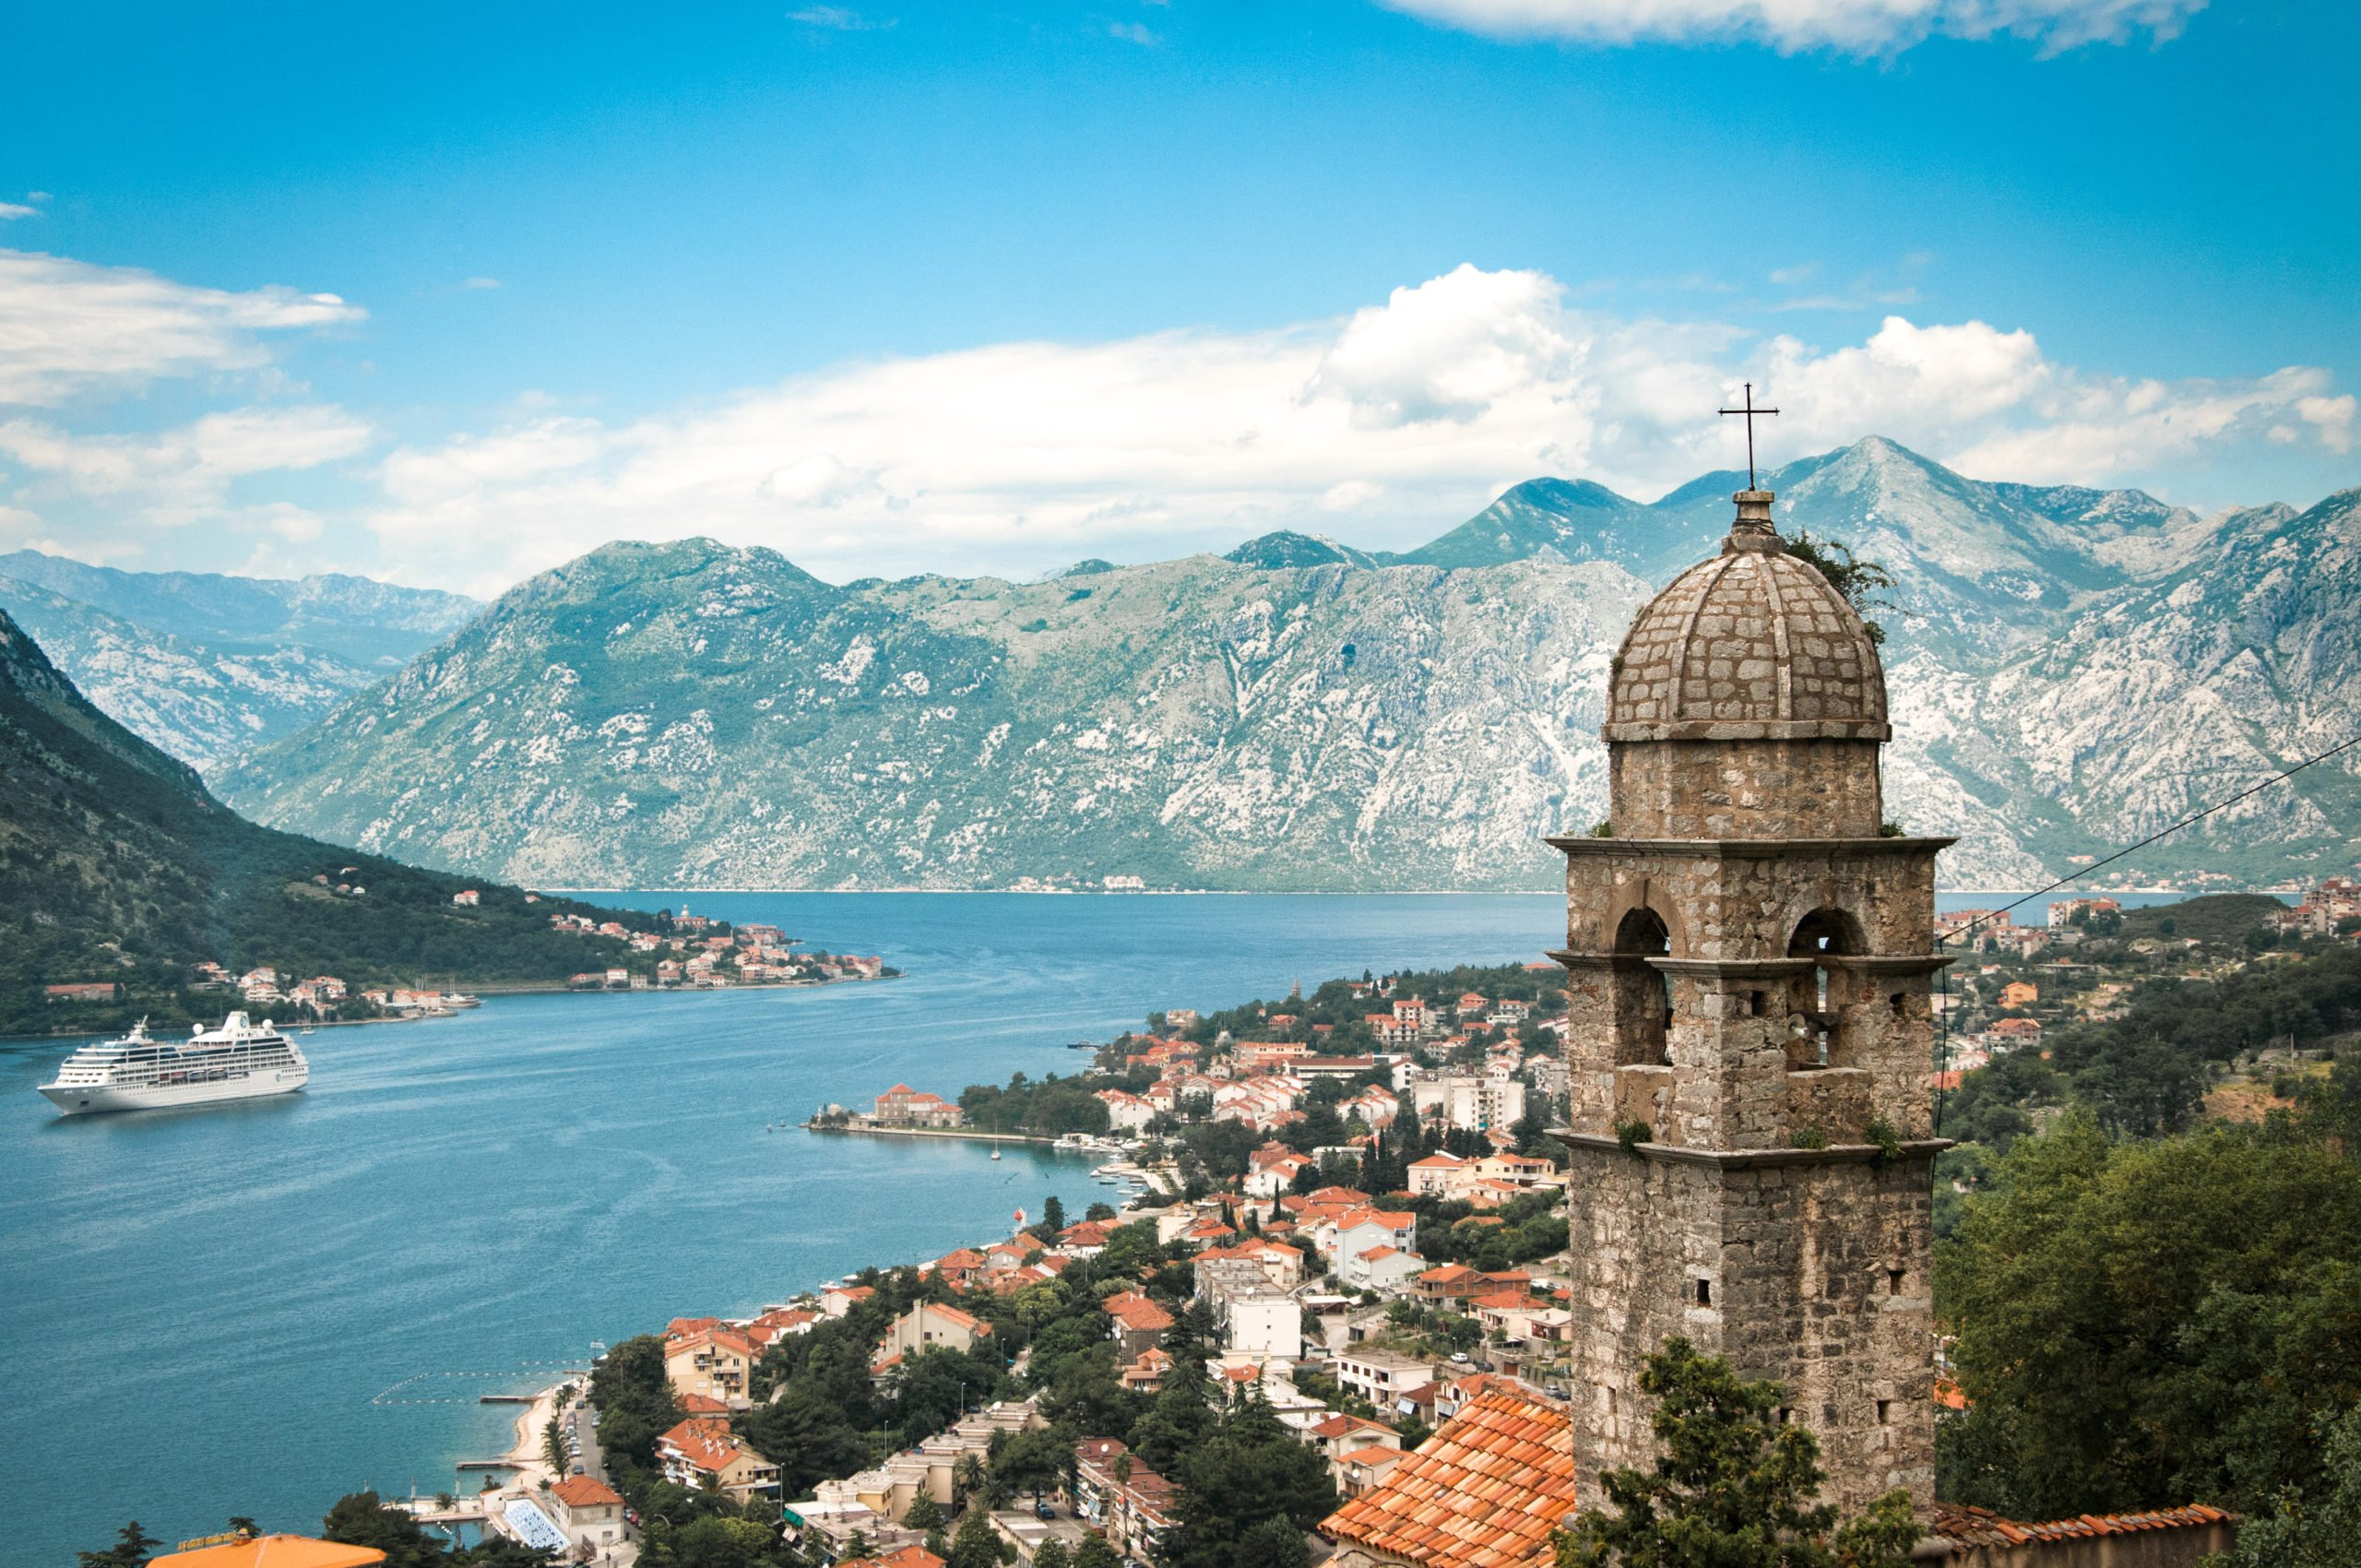 Stop In The City Of Perast On The Montenegro Day Tour From Dubrovnik